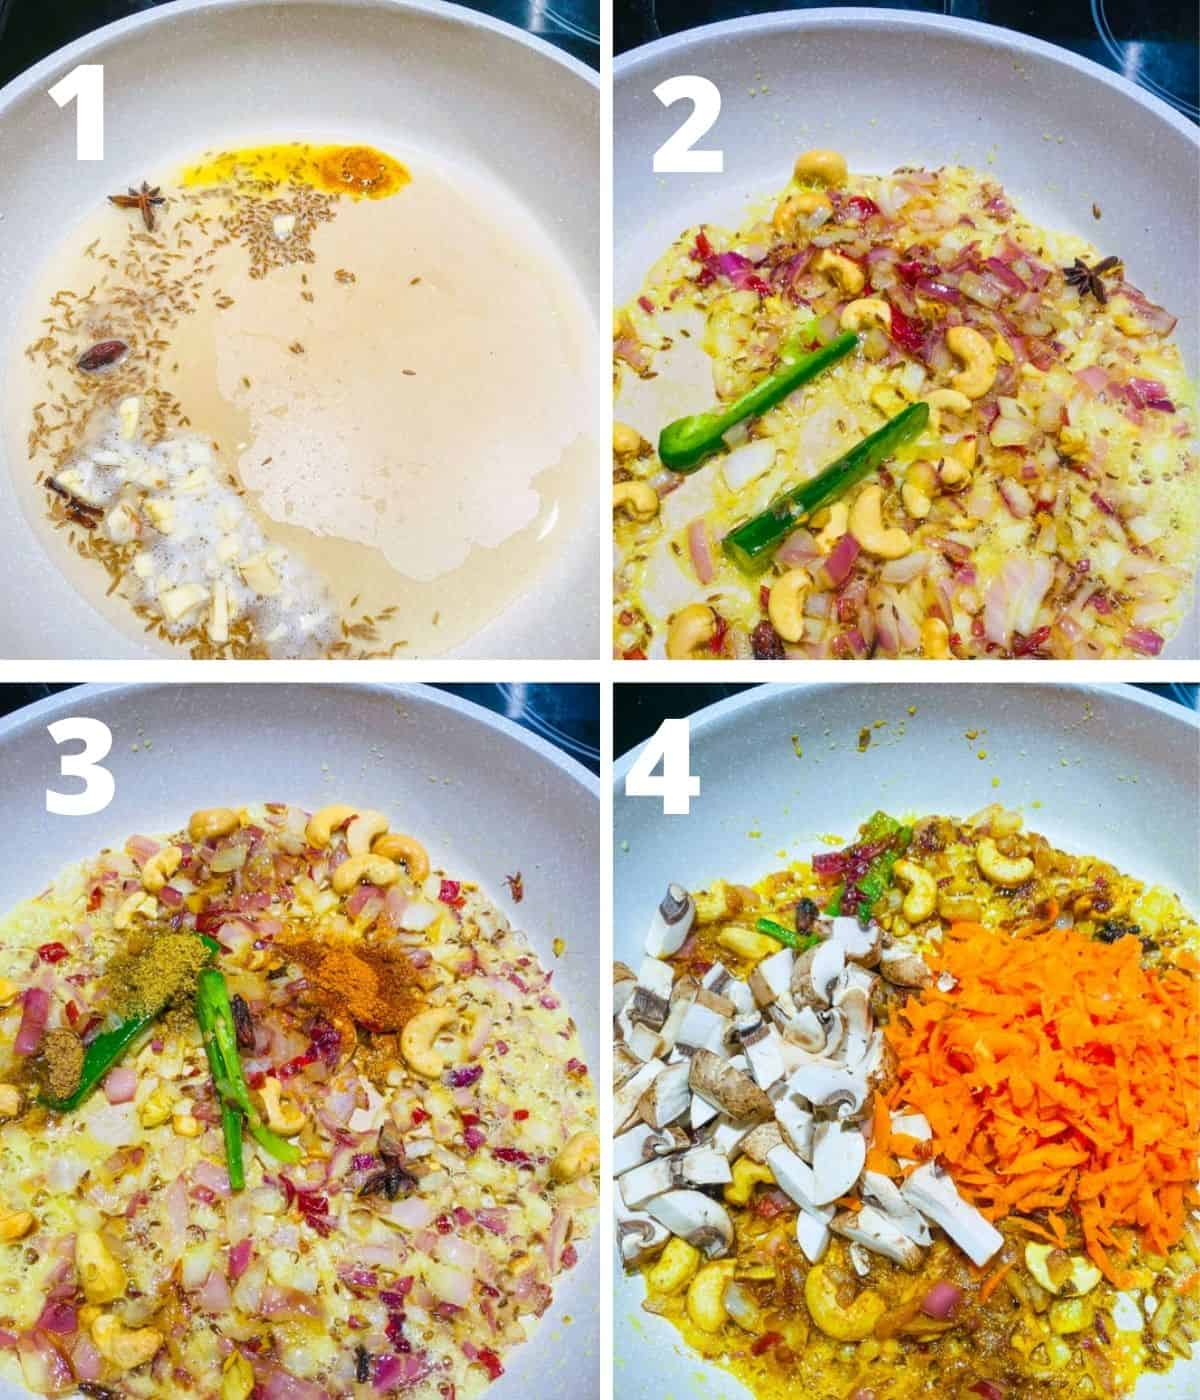 Picture collage of first four steps of Kale rice step by step images. This gallery shows until adding grated carrots and mushrooms.